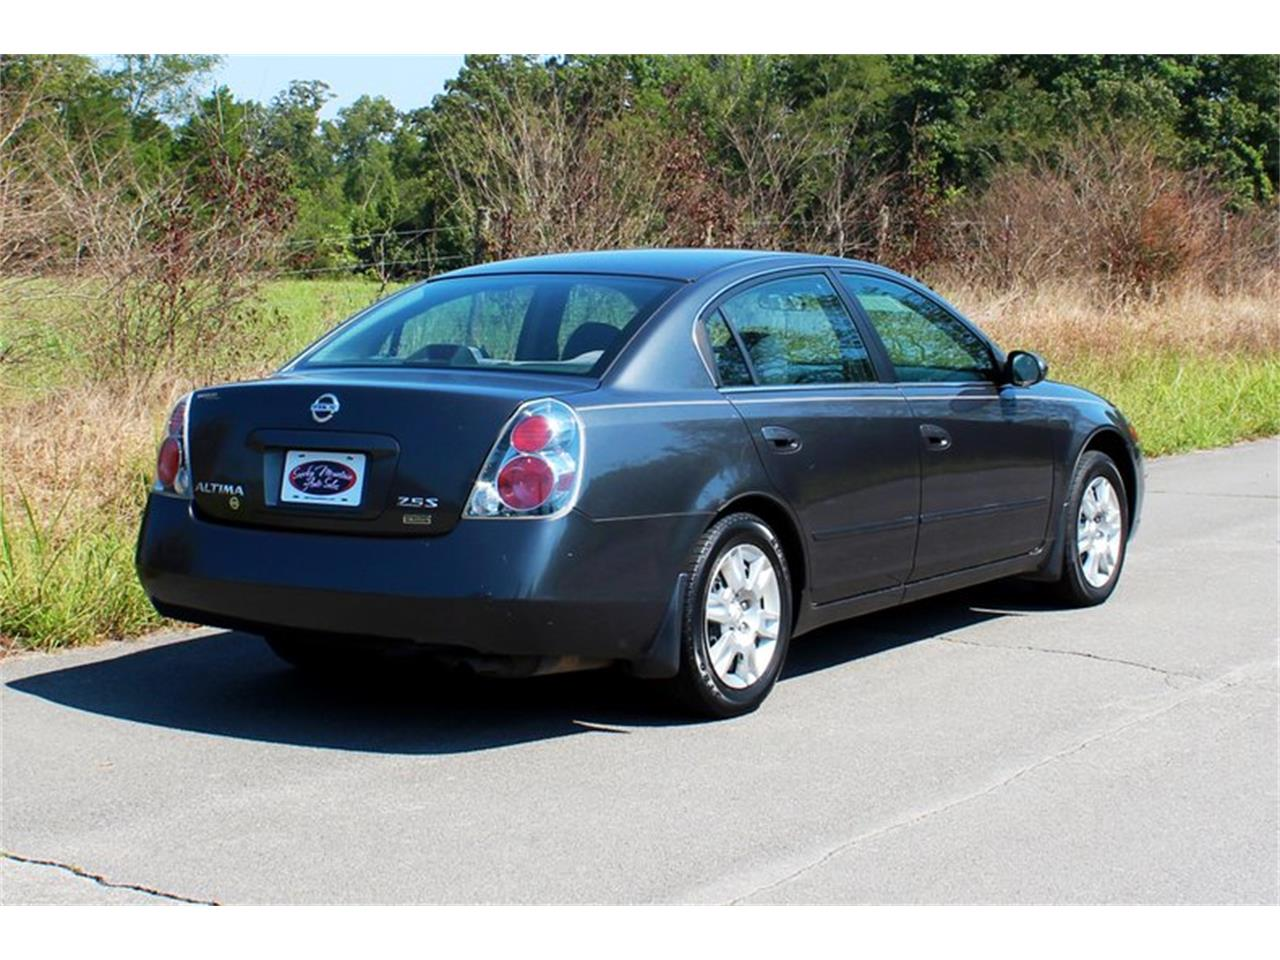 altima 2006 nissan lenoir tennessee classic cc classiccars financing inspection insurance transport